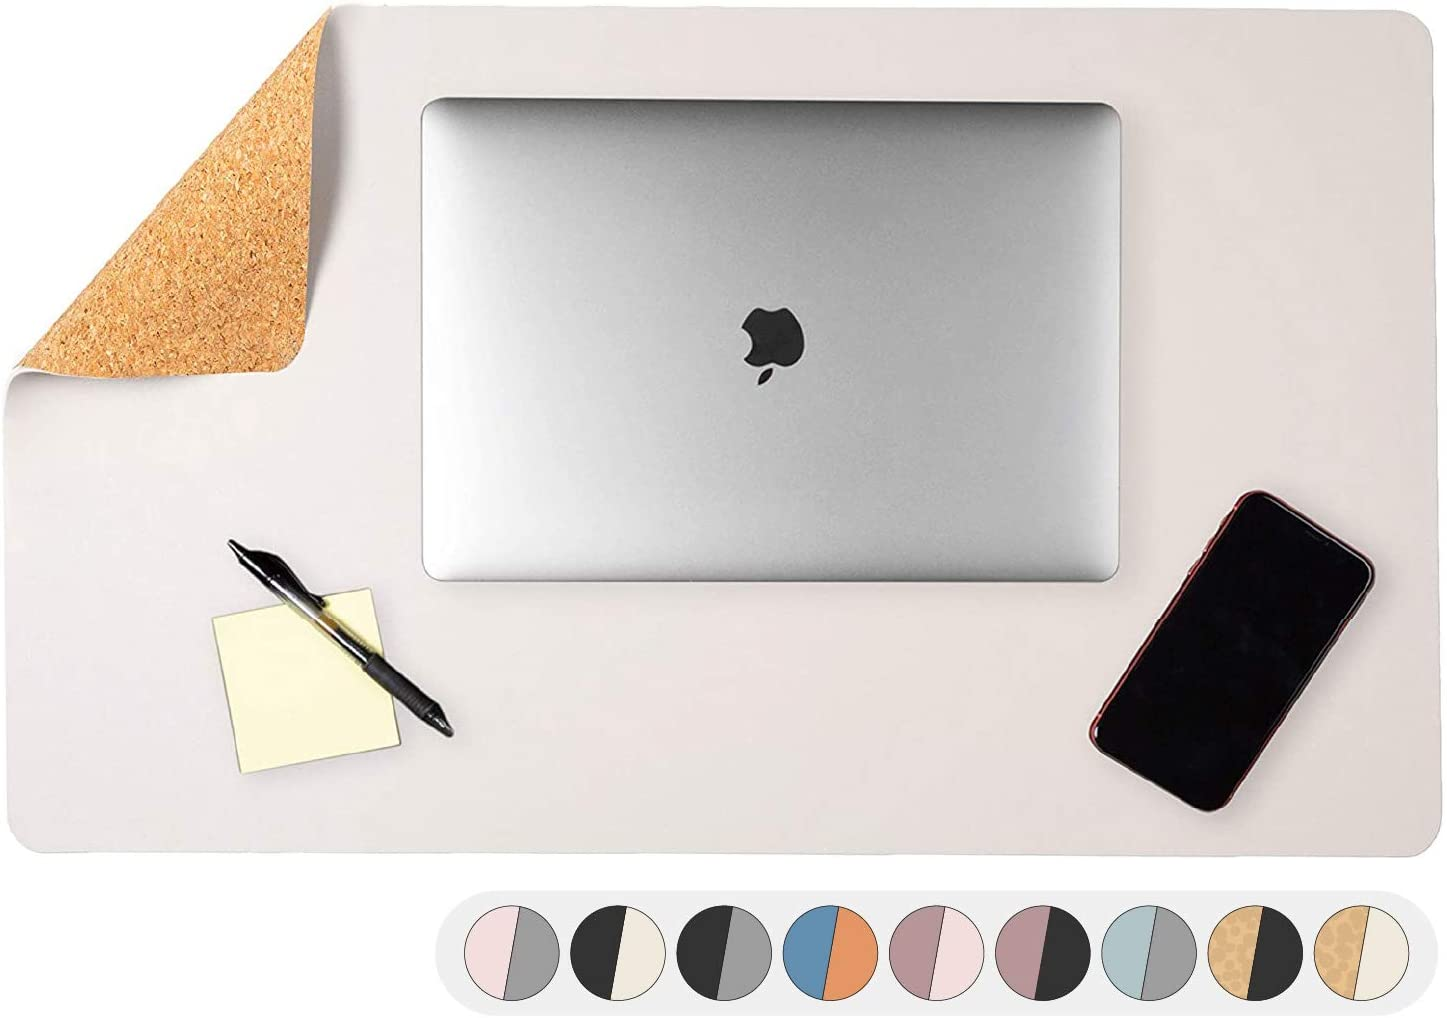 Office Desk Mat, Double Sided Eggshell & Cork - 36 x 17 Inch Leather Style Computer Pad for Desk